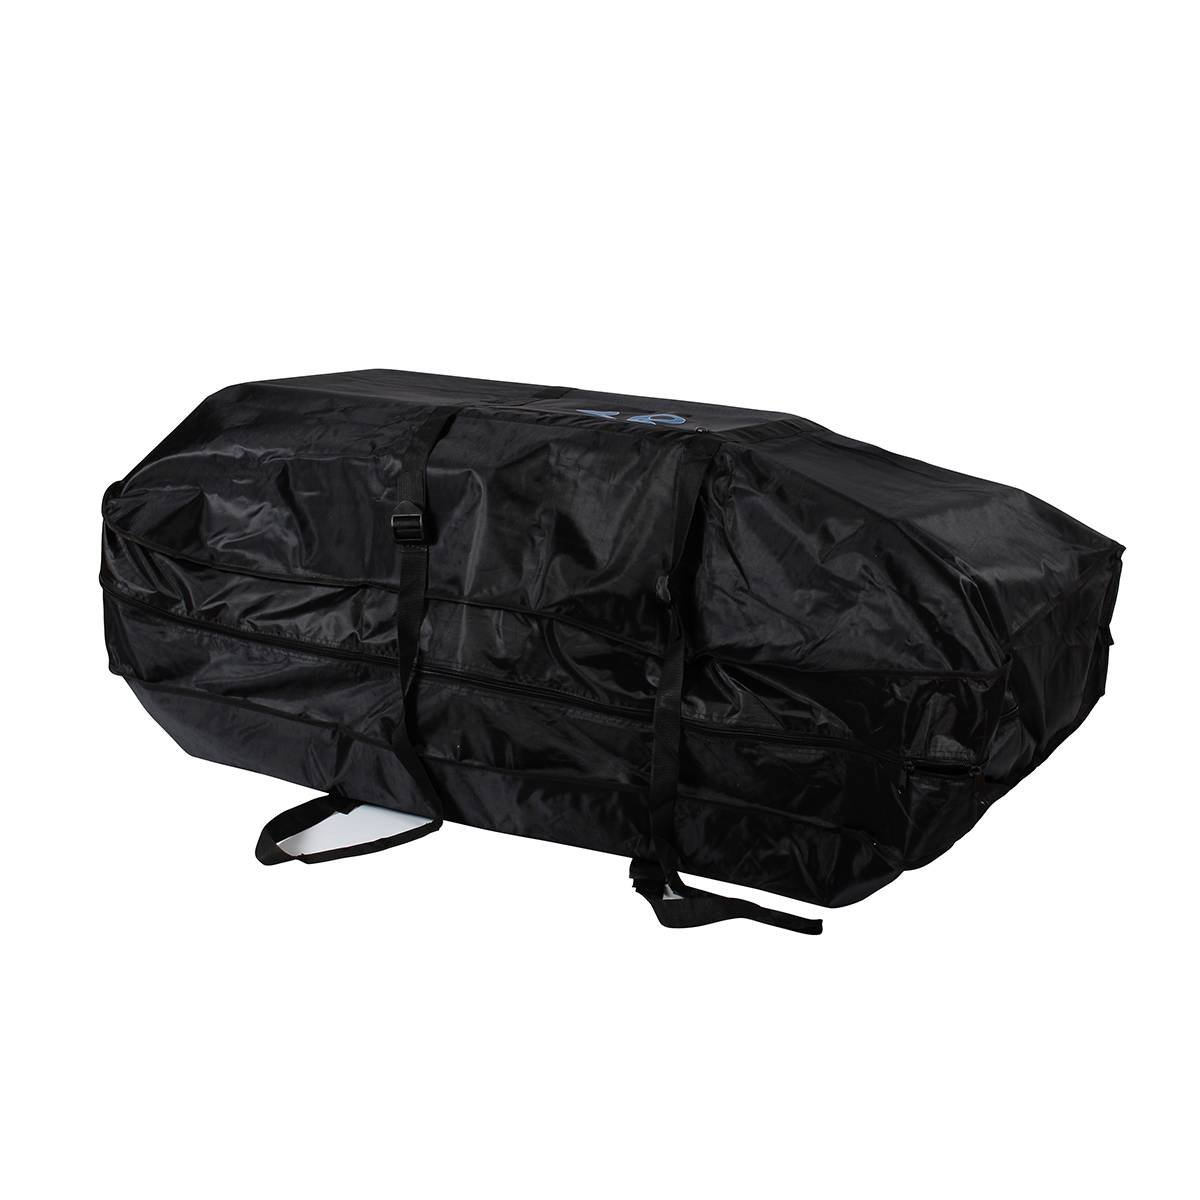 OUTERDO 26-inch Mountain Bike Bicycle Loading Bags Loading Oxford Thick Package Bags by OUTERDO (Image #5)